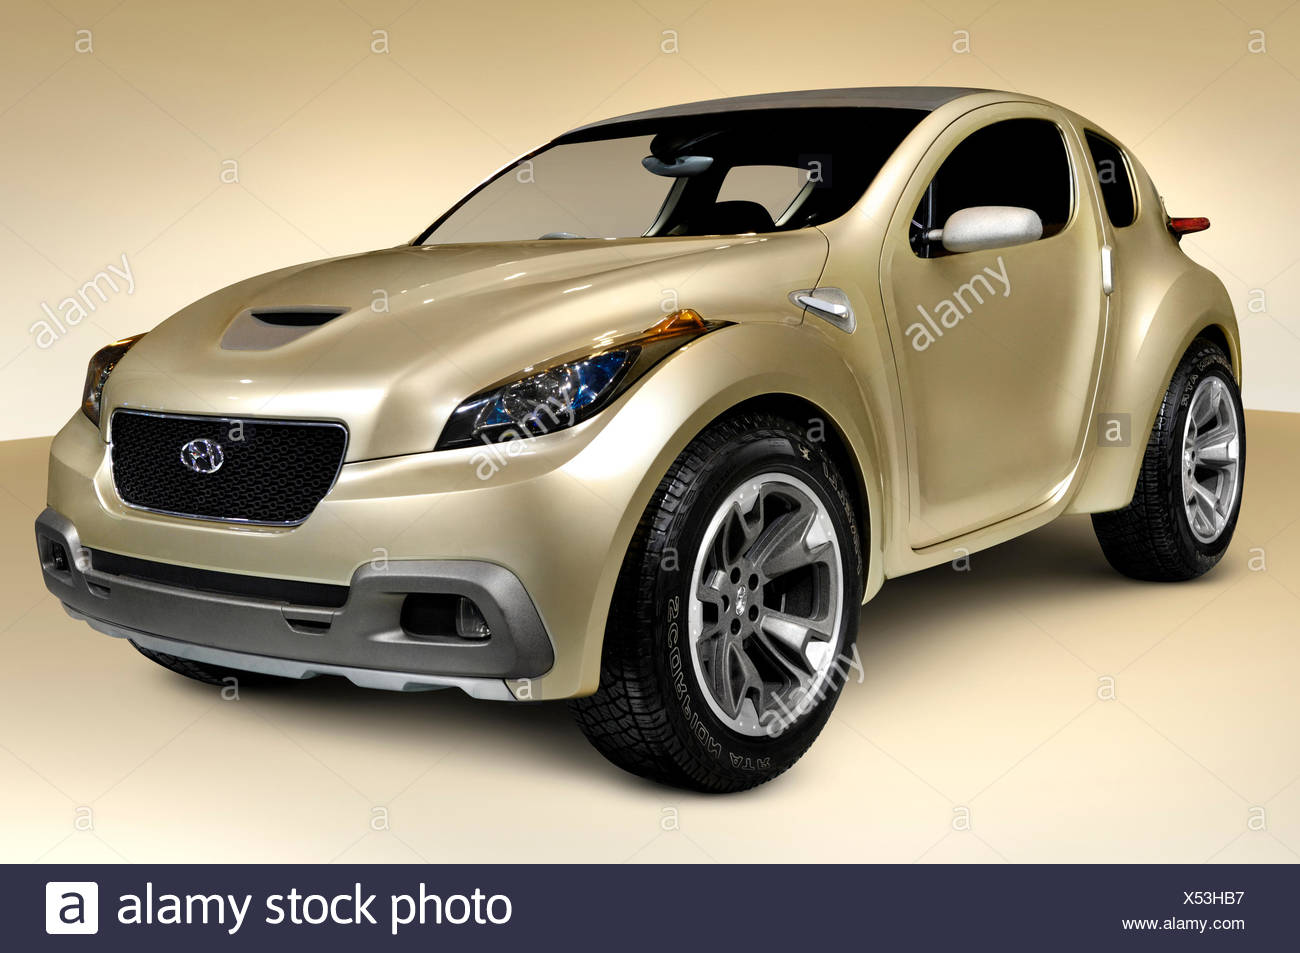 HCD10 Hyundai Hellion 2009 futuristic ergonomic environment friendly concept car - Stock Image